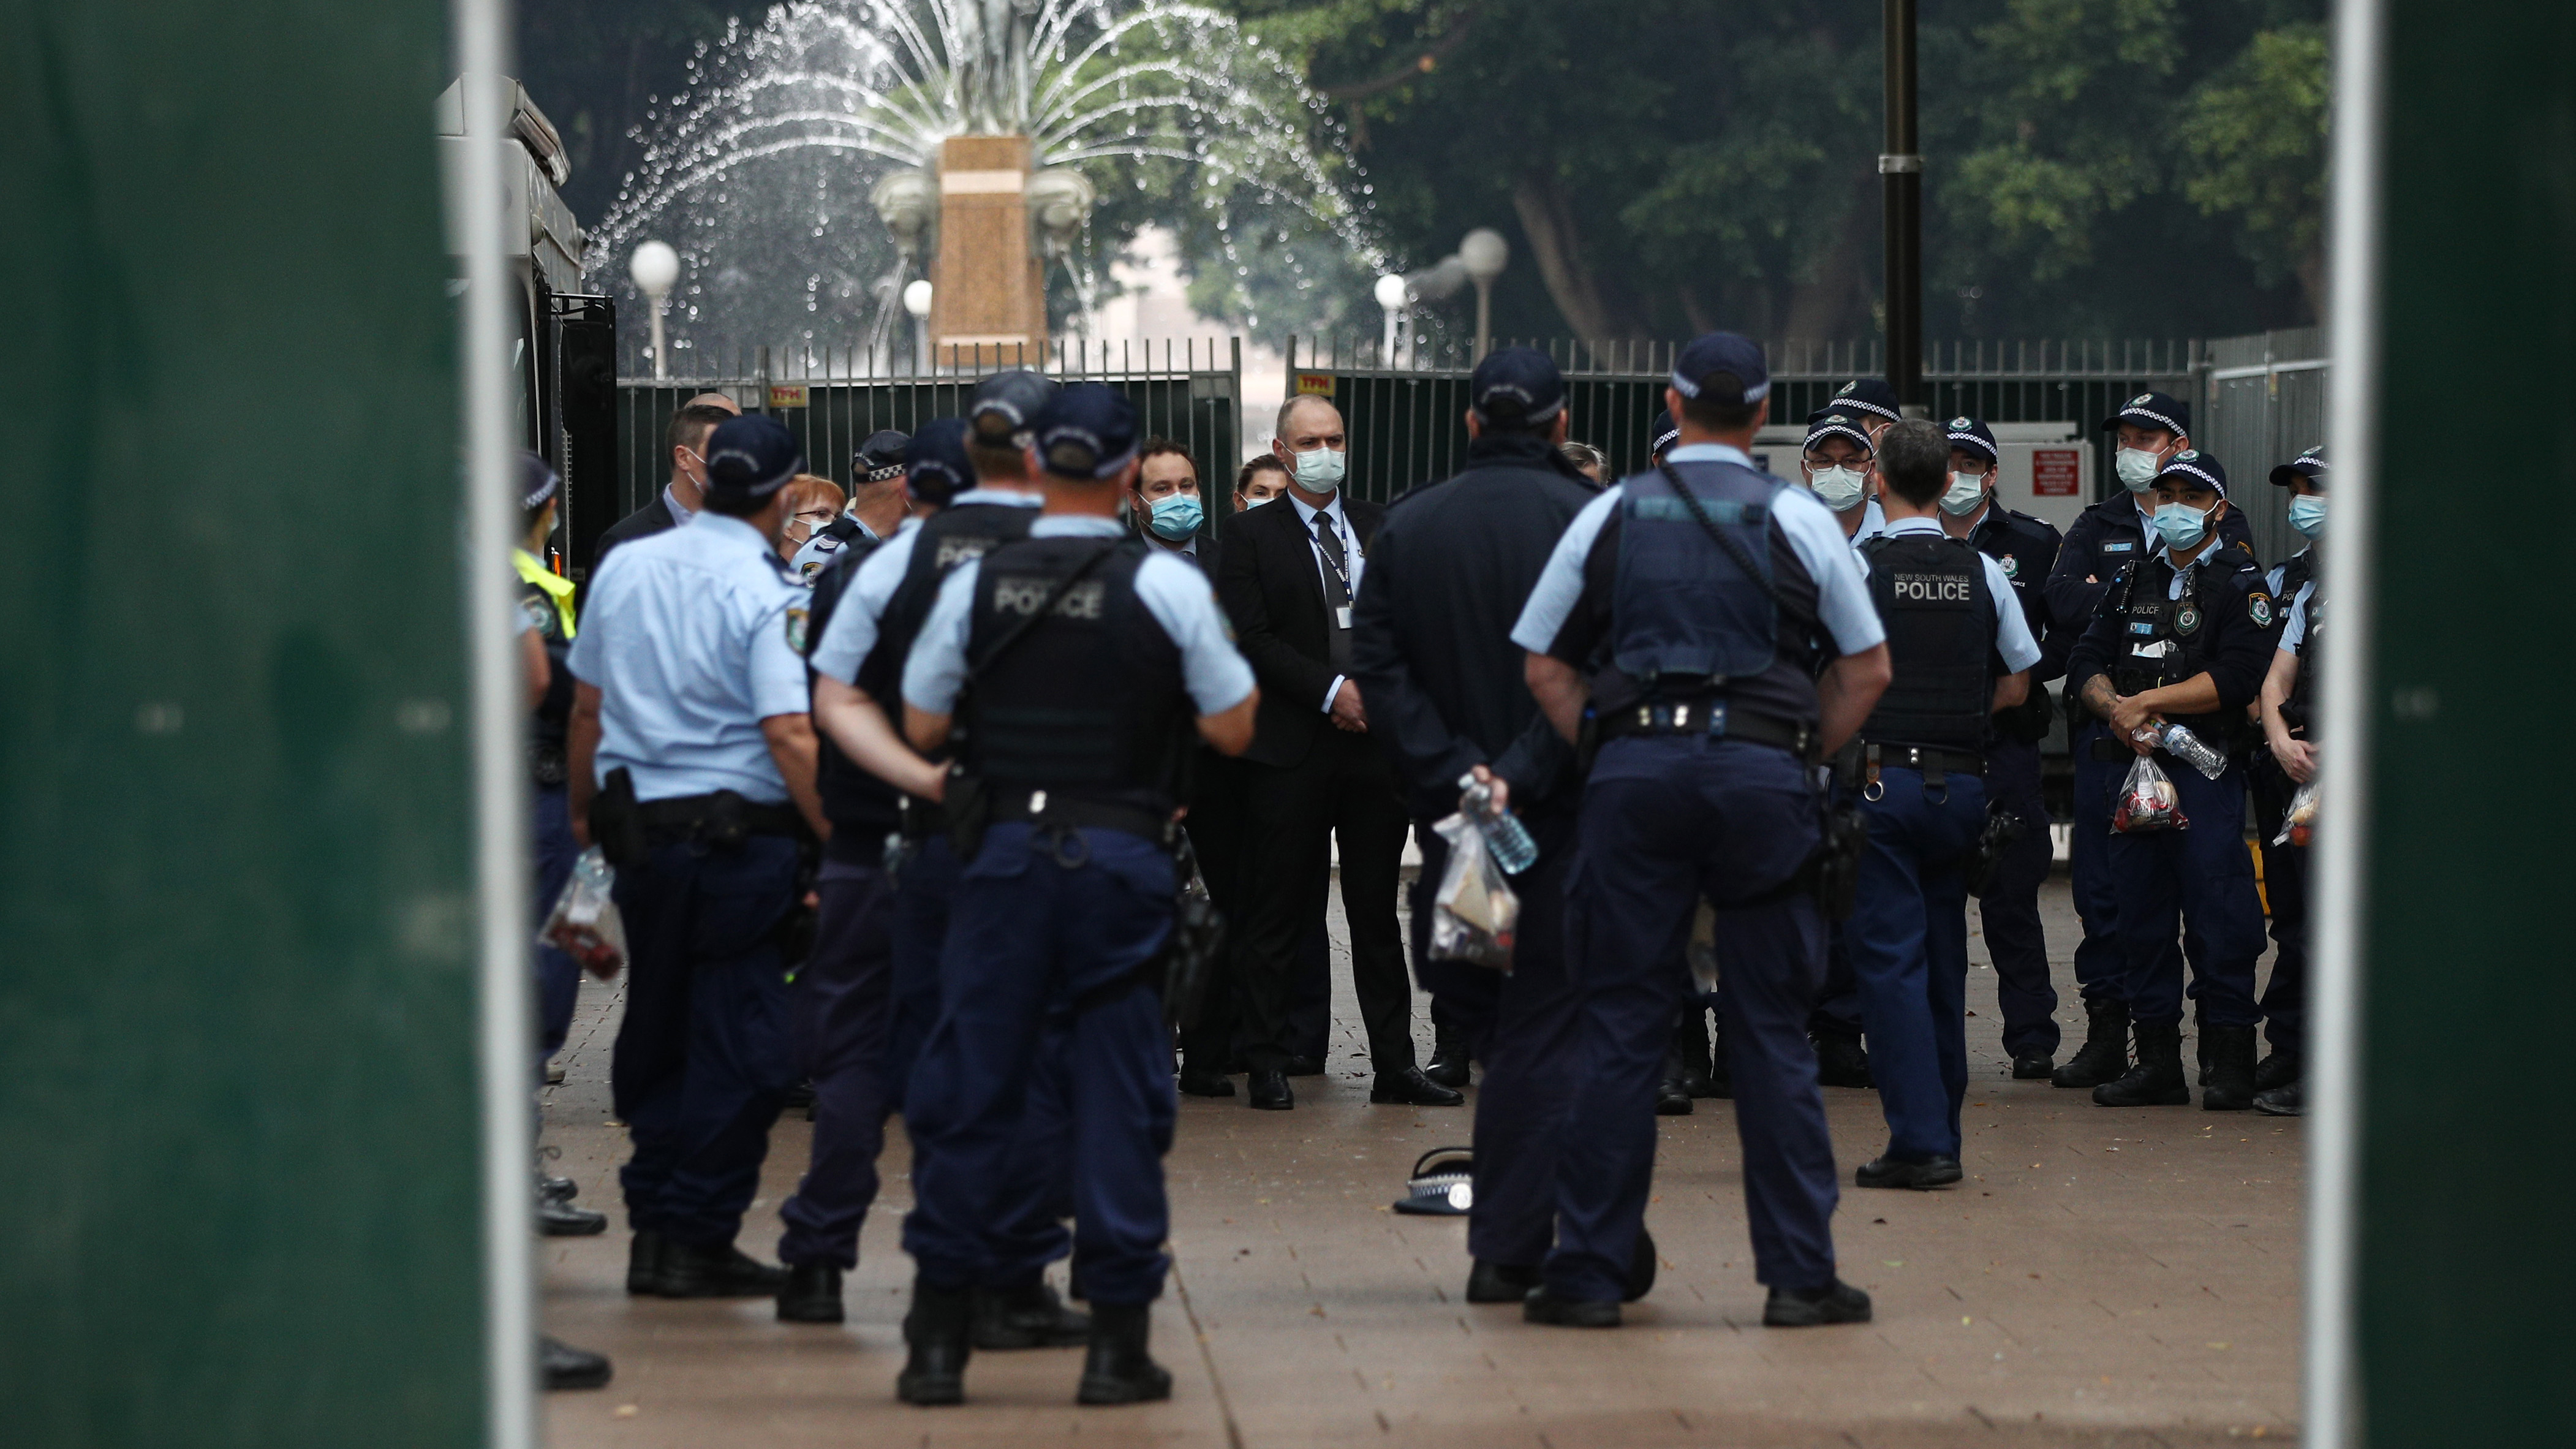 NSW Police assemble for a meeting in Hyde Park.